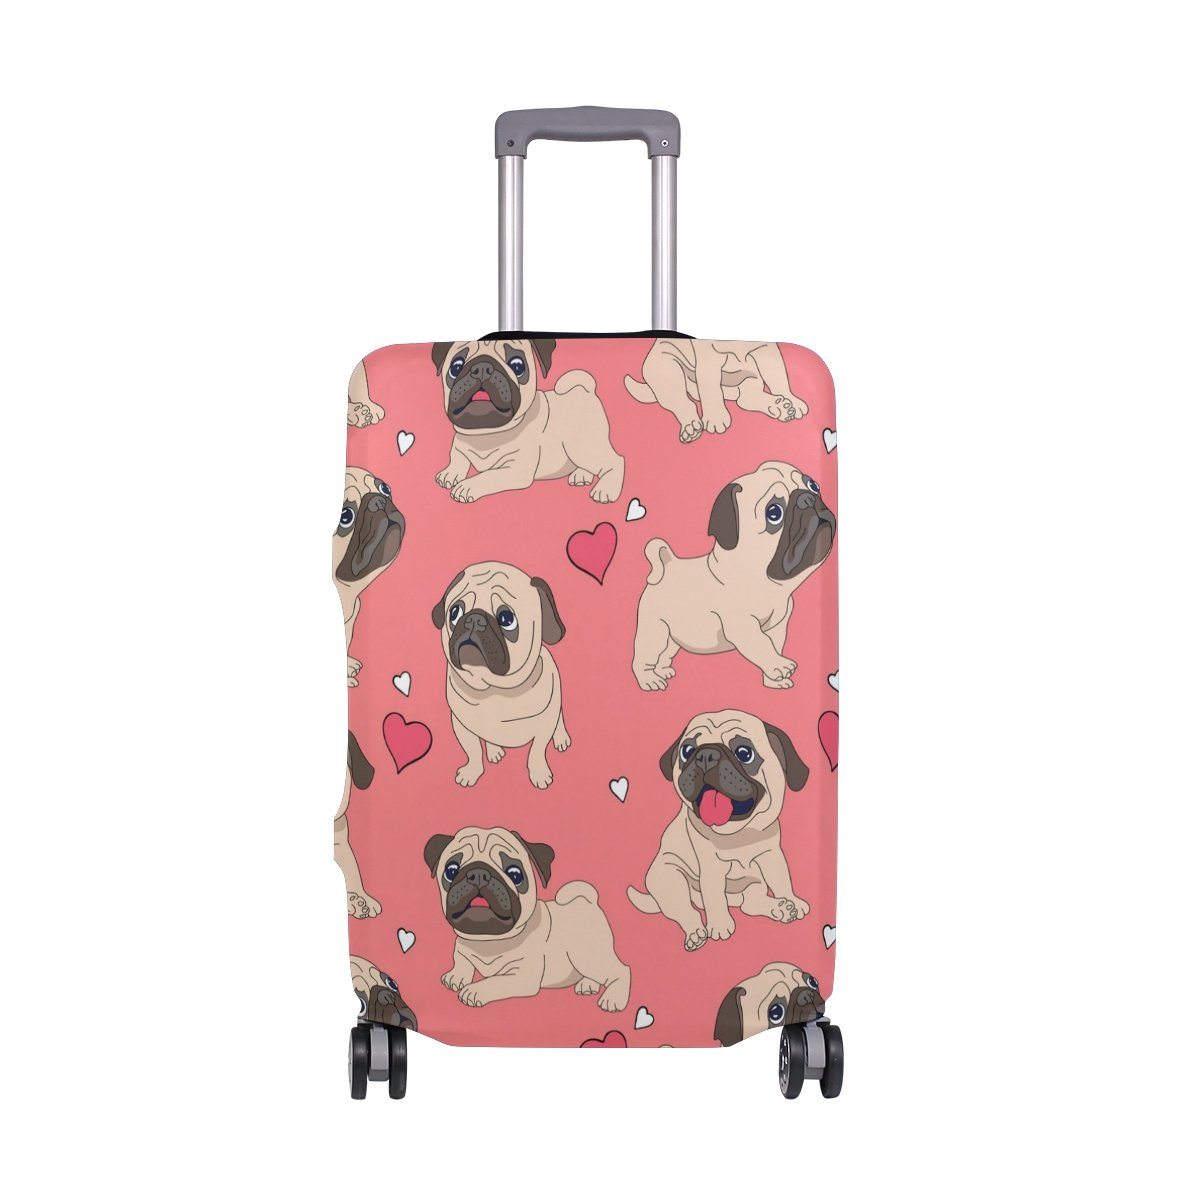 Cute Dog Puppy Love Heart Suitcase Luggage Cover Protector for Travel Kids Men Women